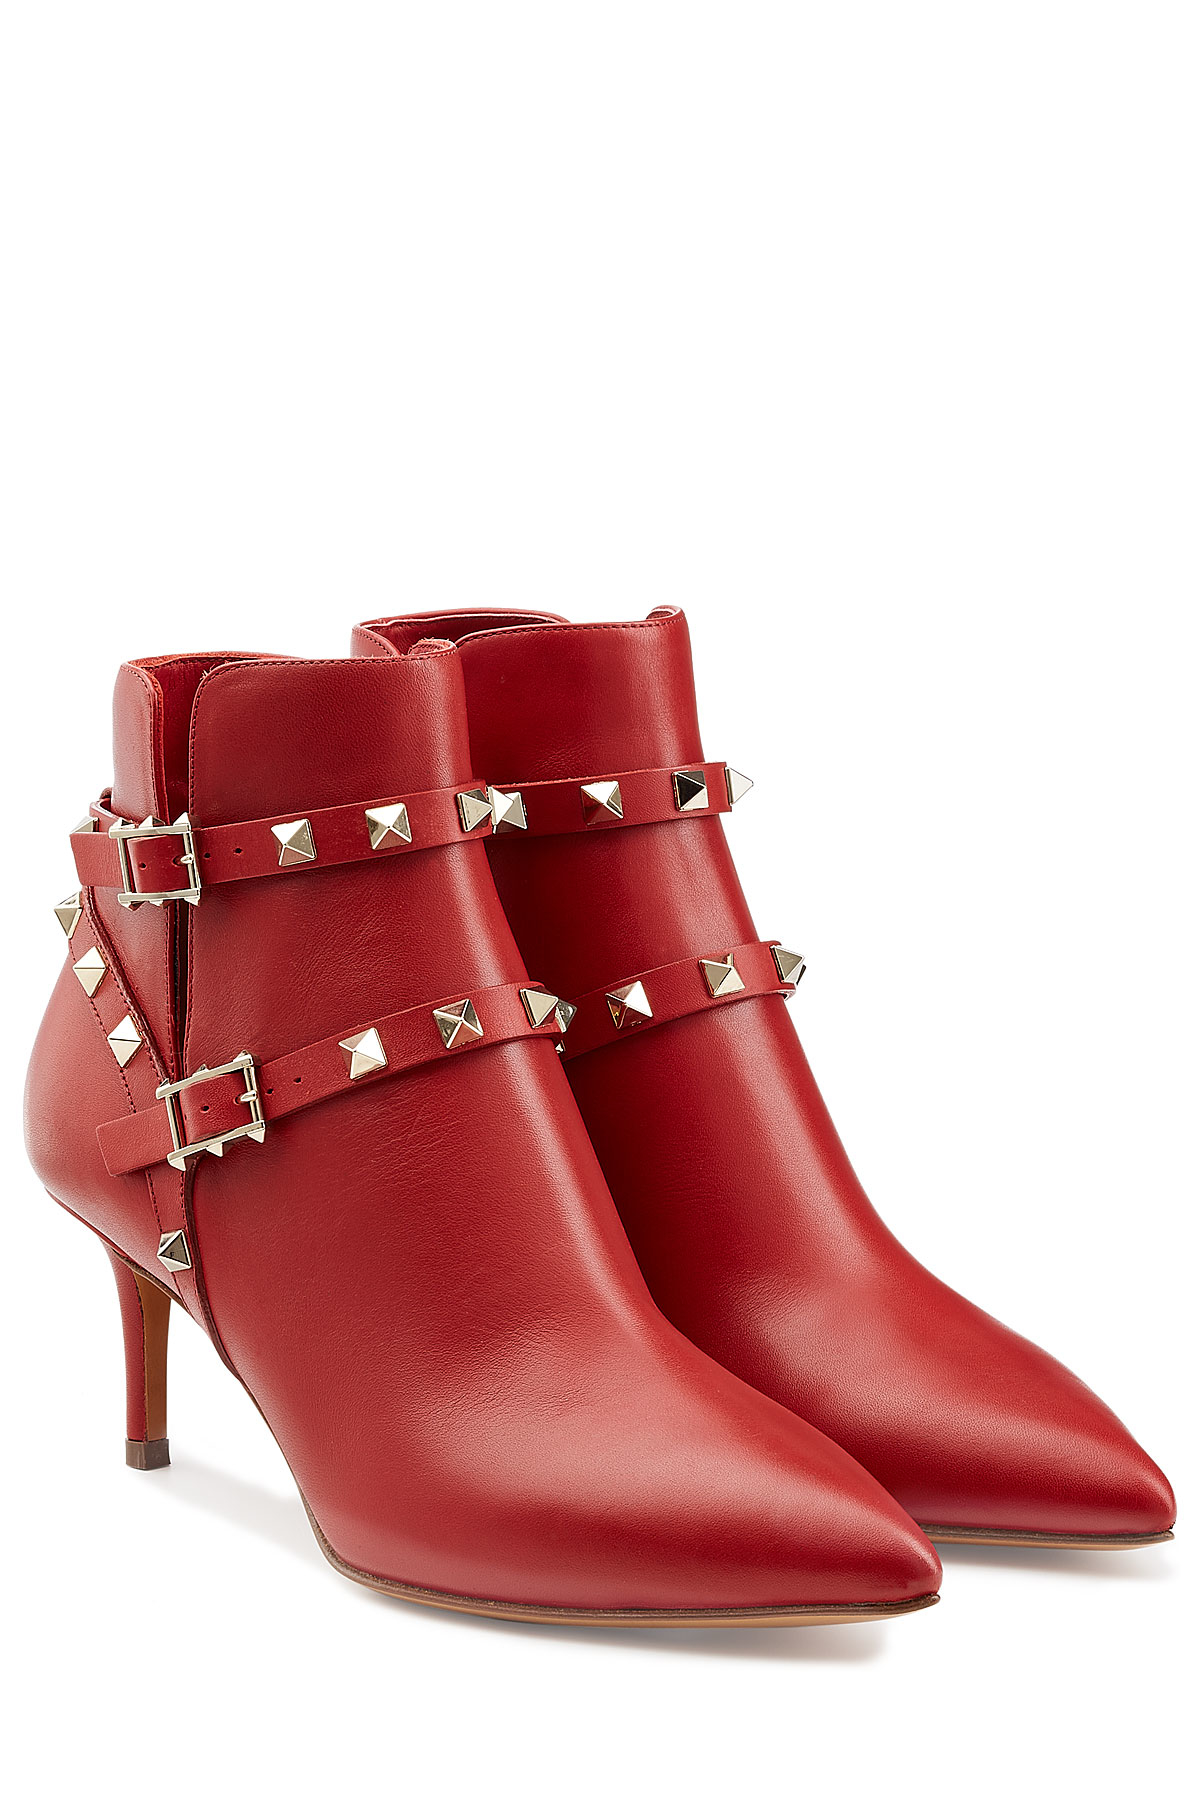 Valentino Rockstud Leather Ankle Boots - Red in Red | Lyst